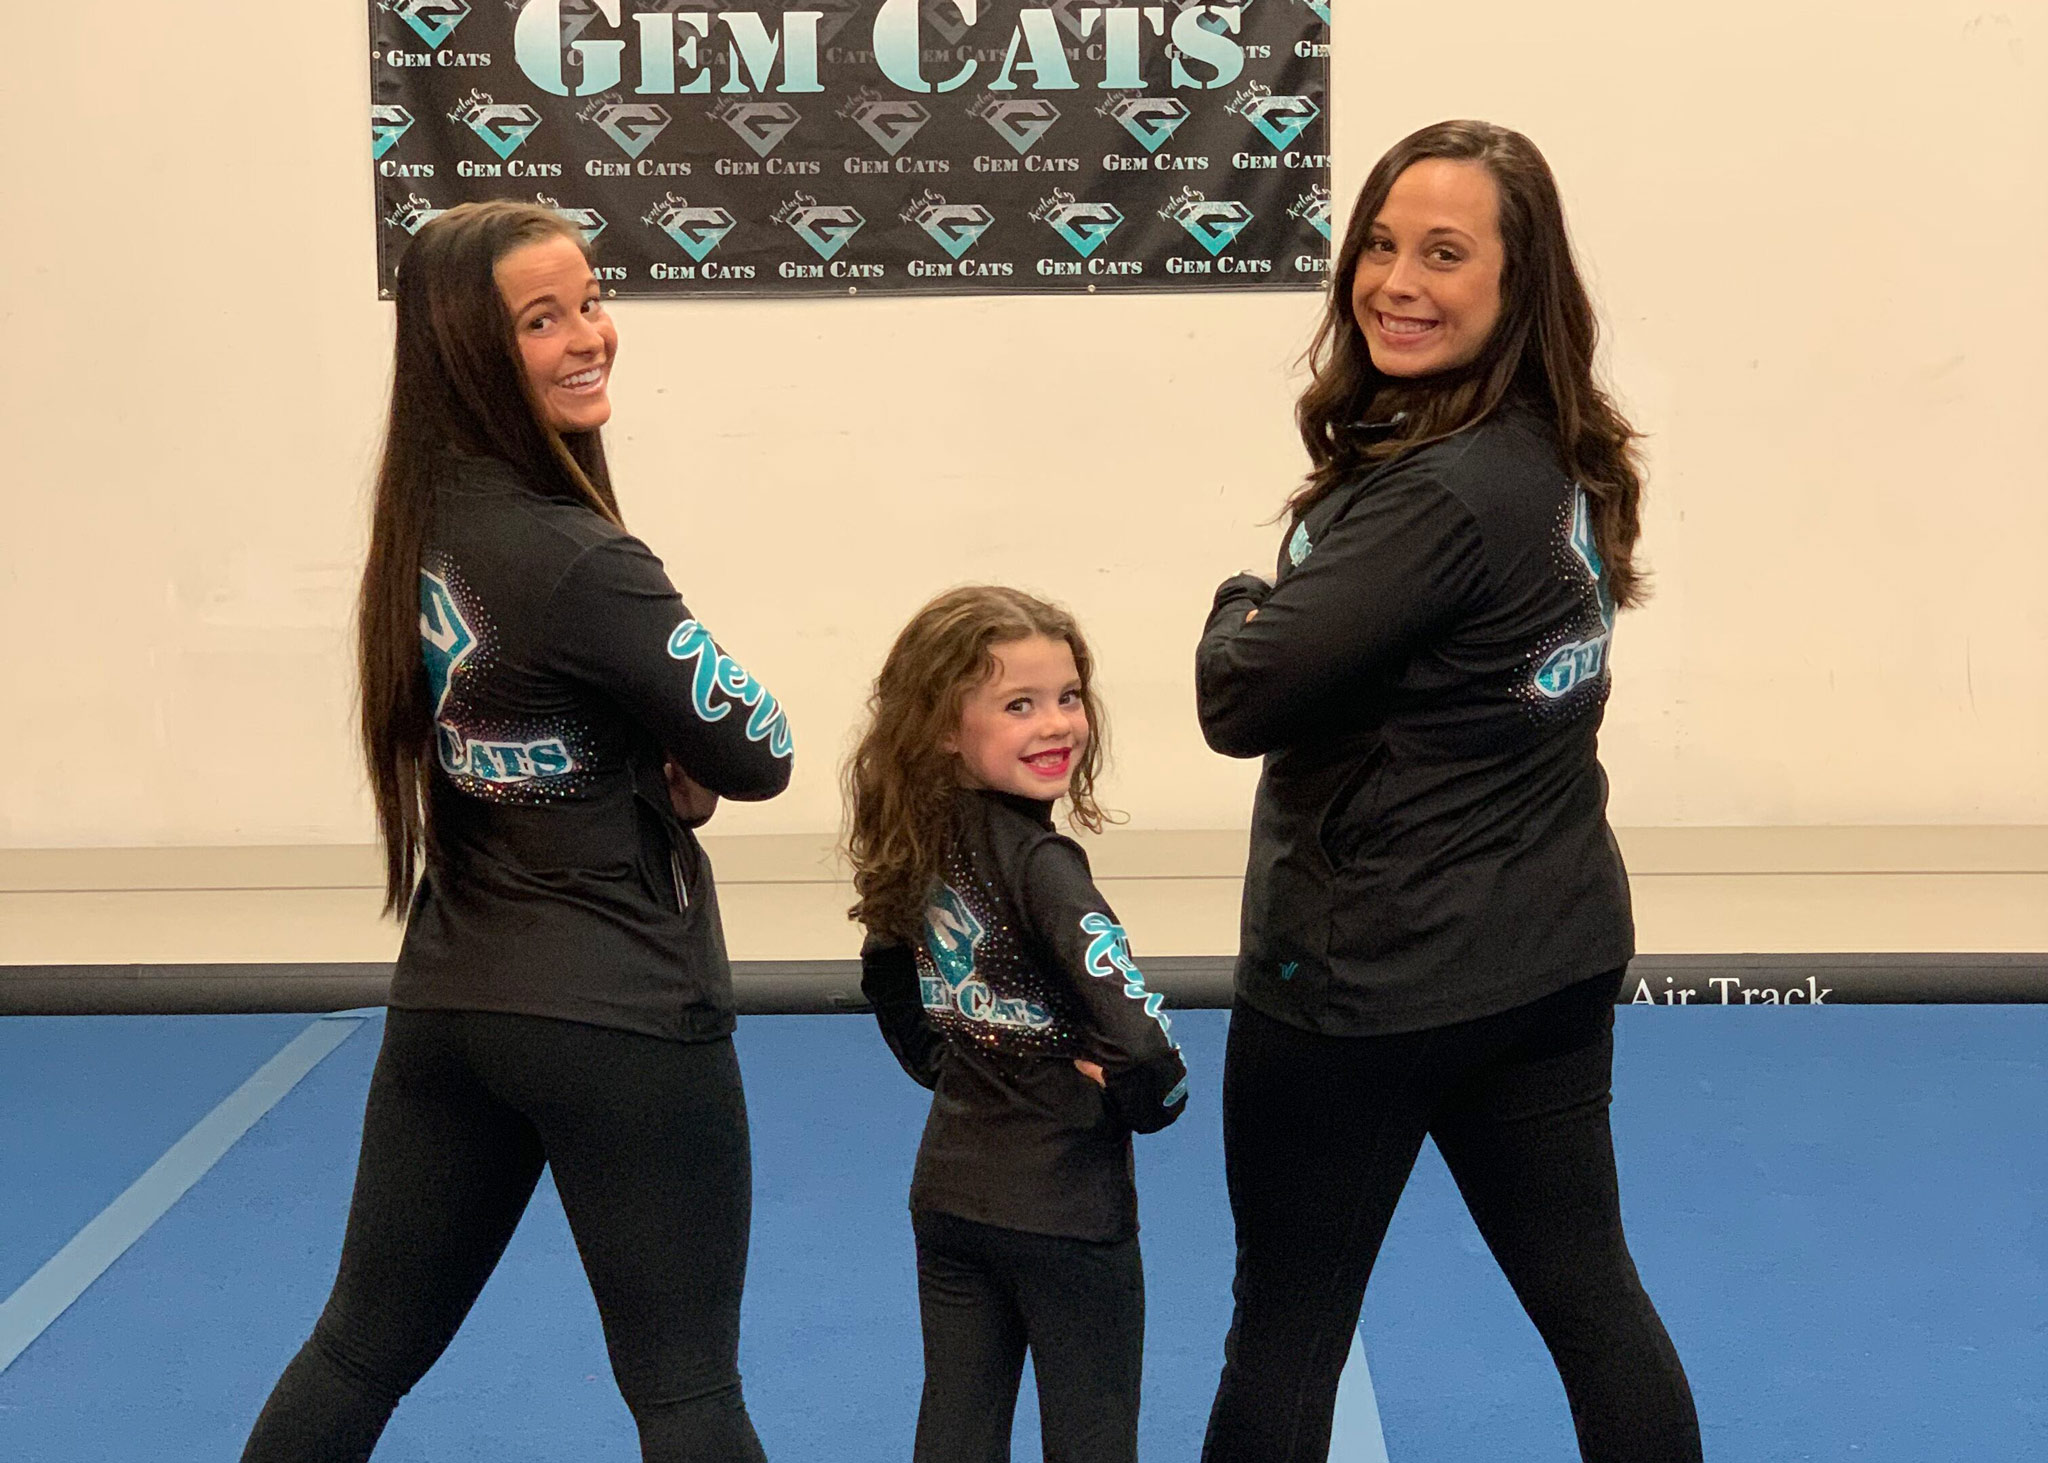 Izzy poses with two of the adult Gem Cat gymnasts.